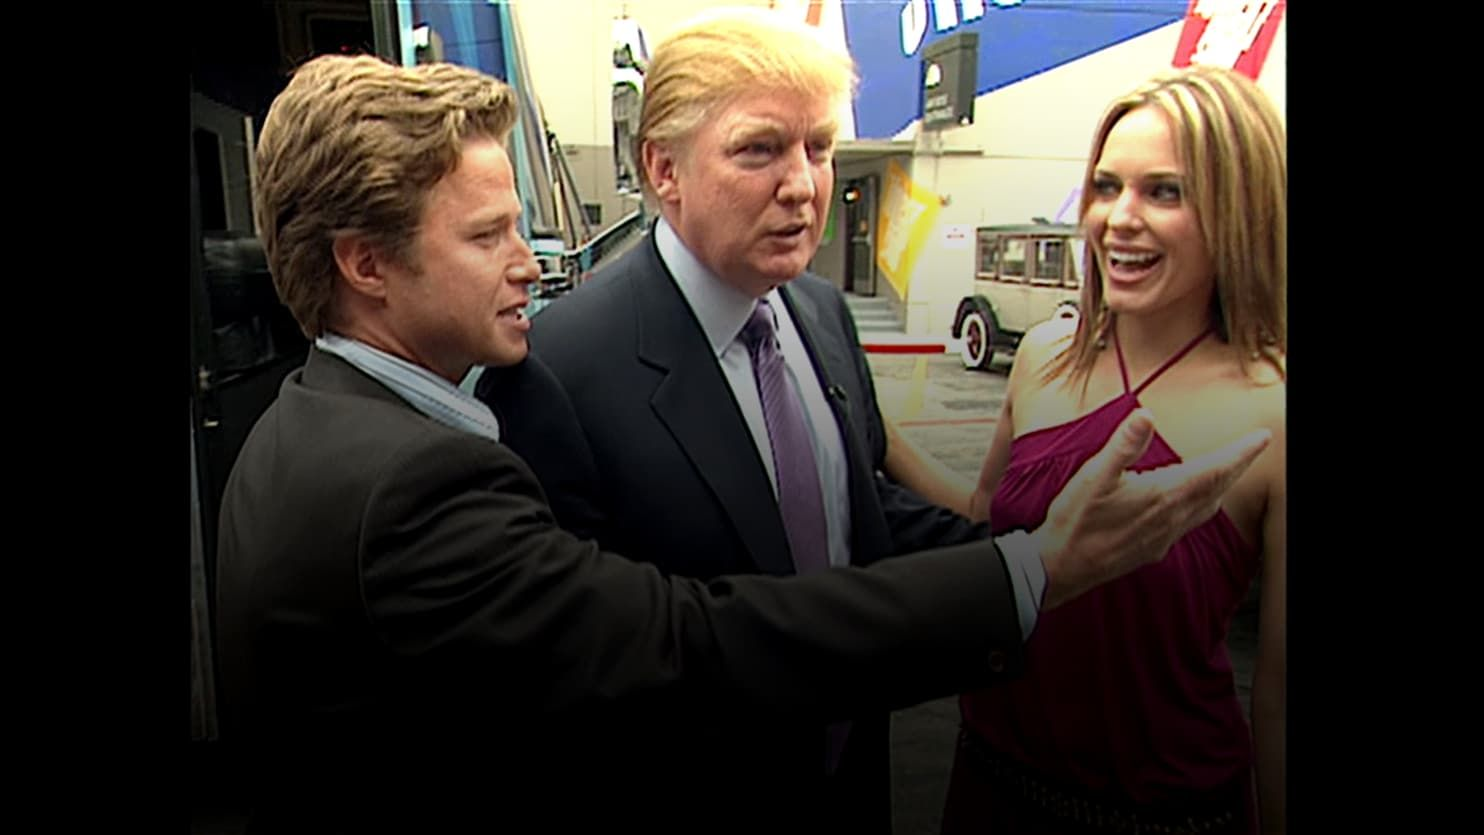 Billy Bush speaks out about Trump 'Access Hollywood' tape: 'I wish I had changed the topic' - Washington Post